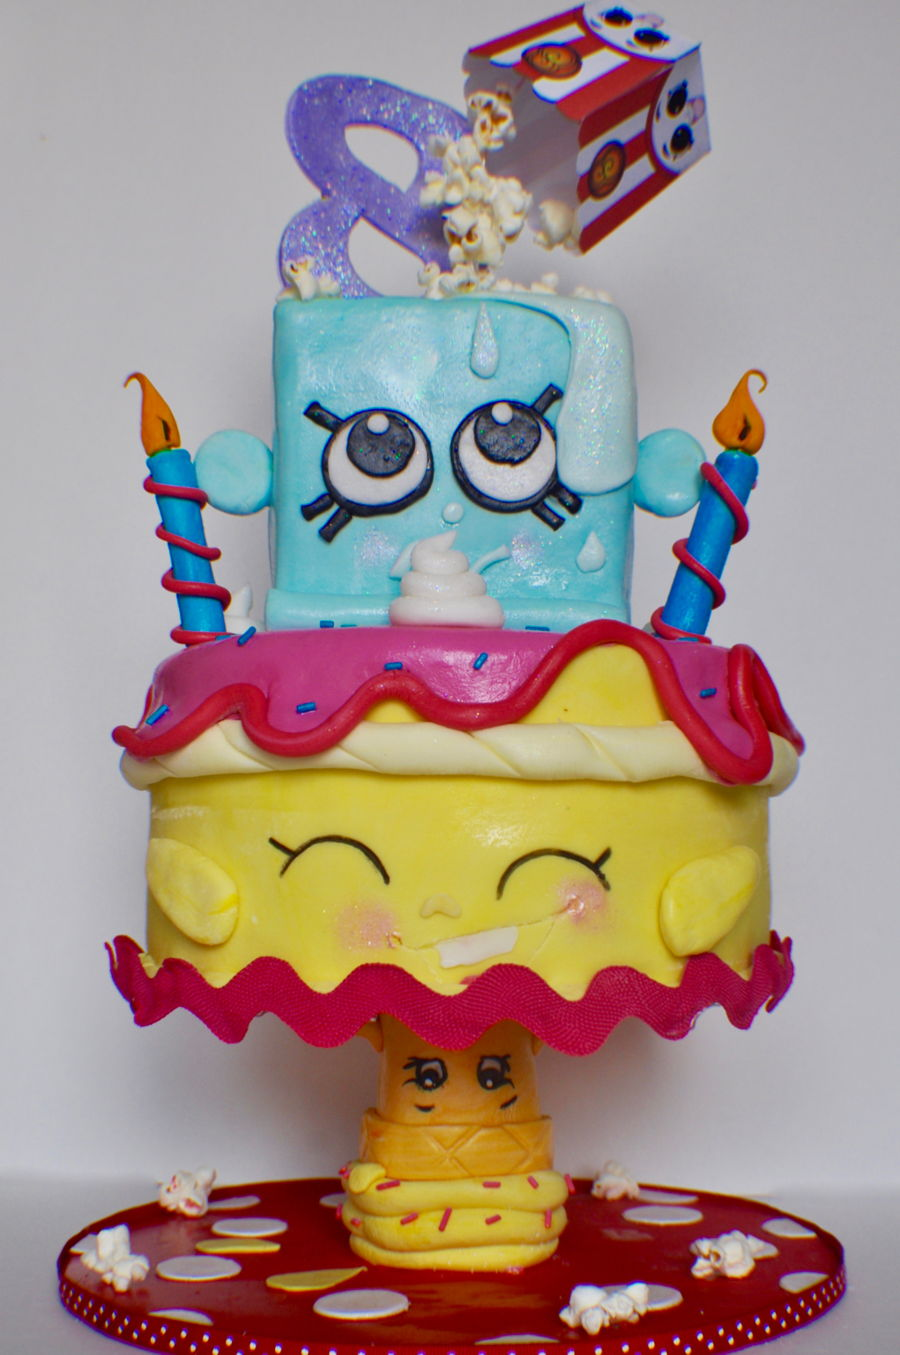 Gravity Defying Shopkins on Cake Central